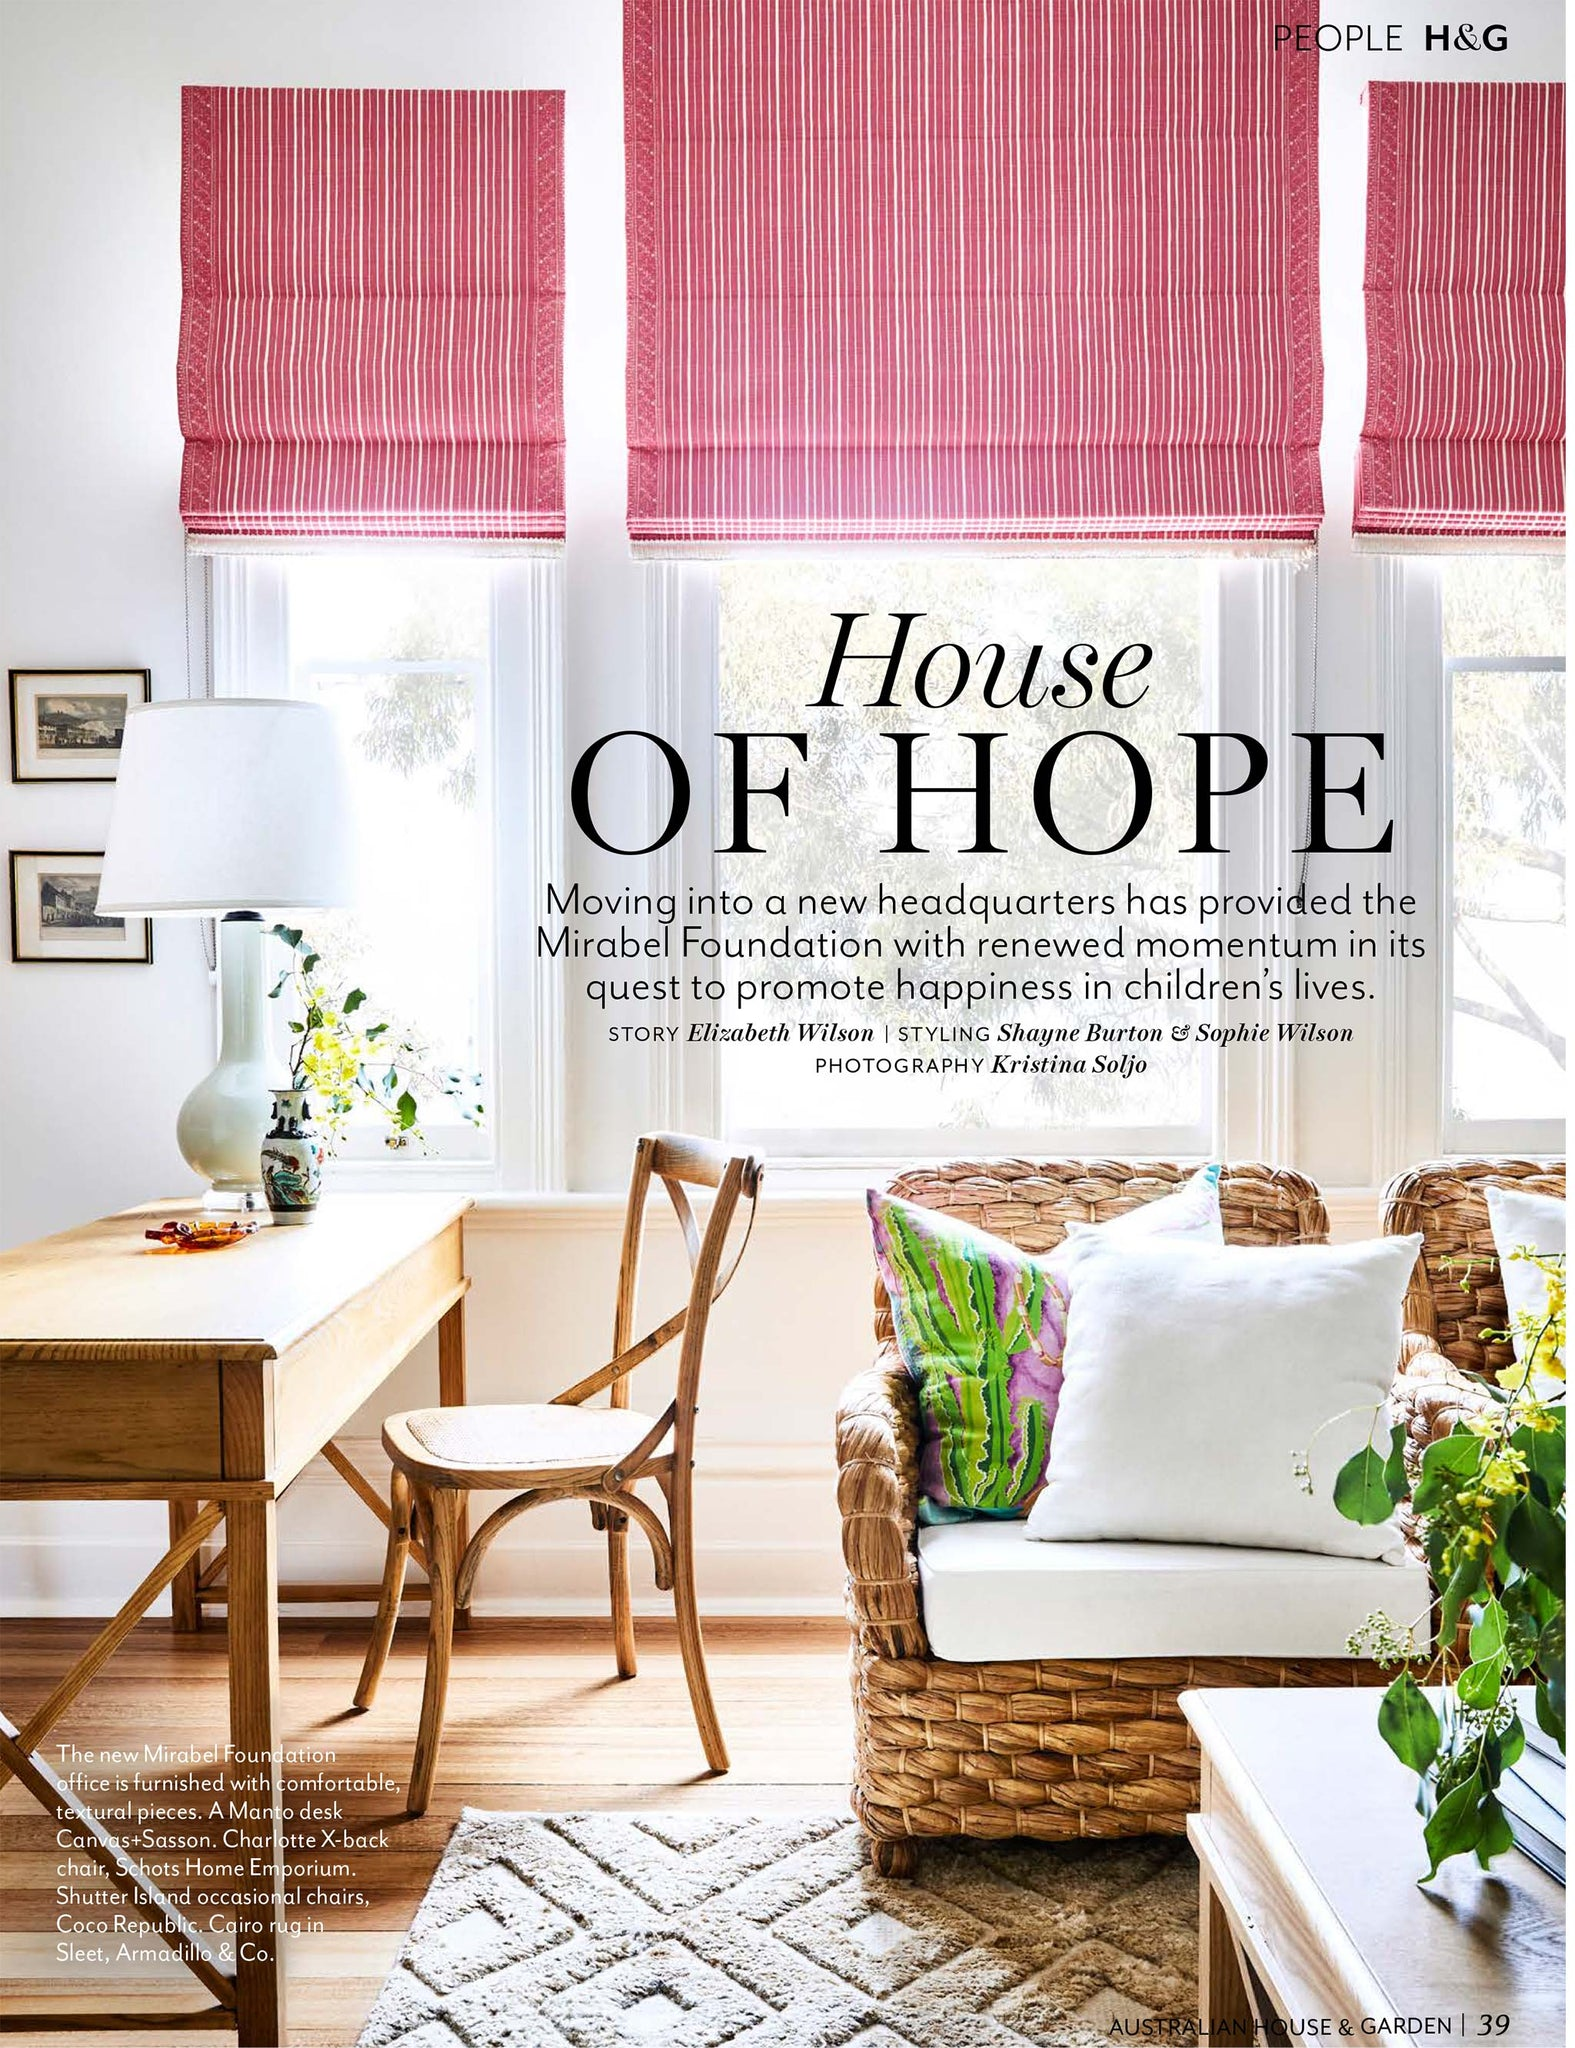 house-and-garden-House-of-Hope